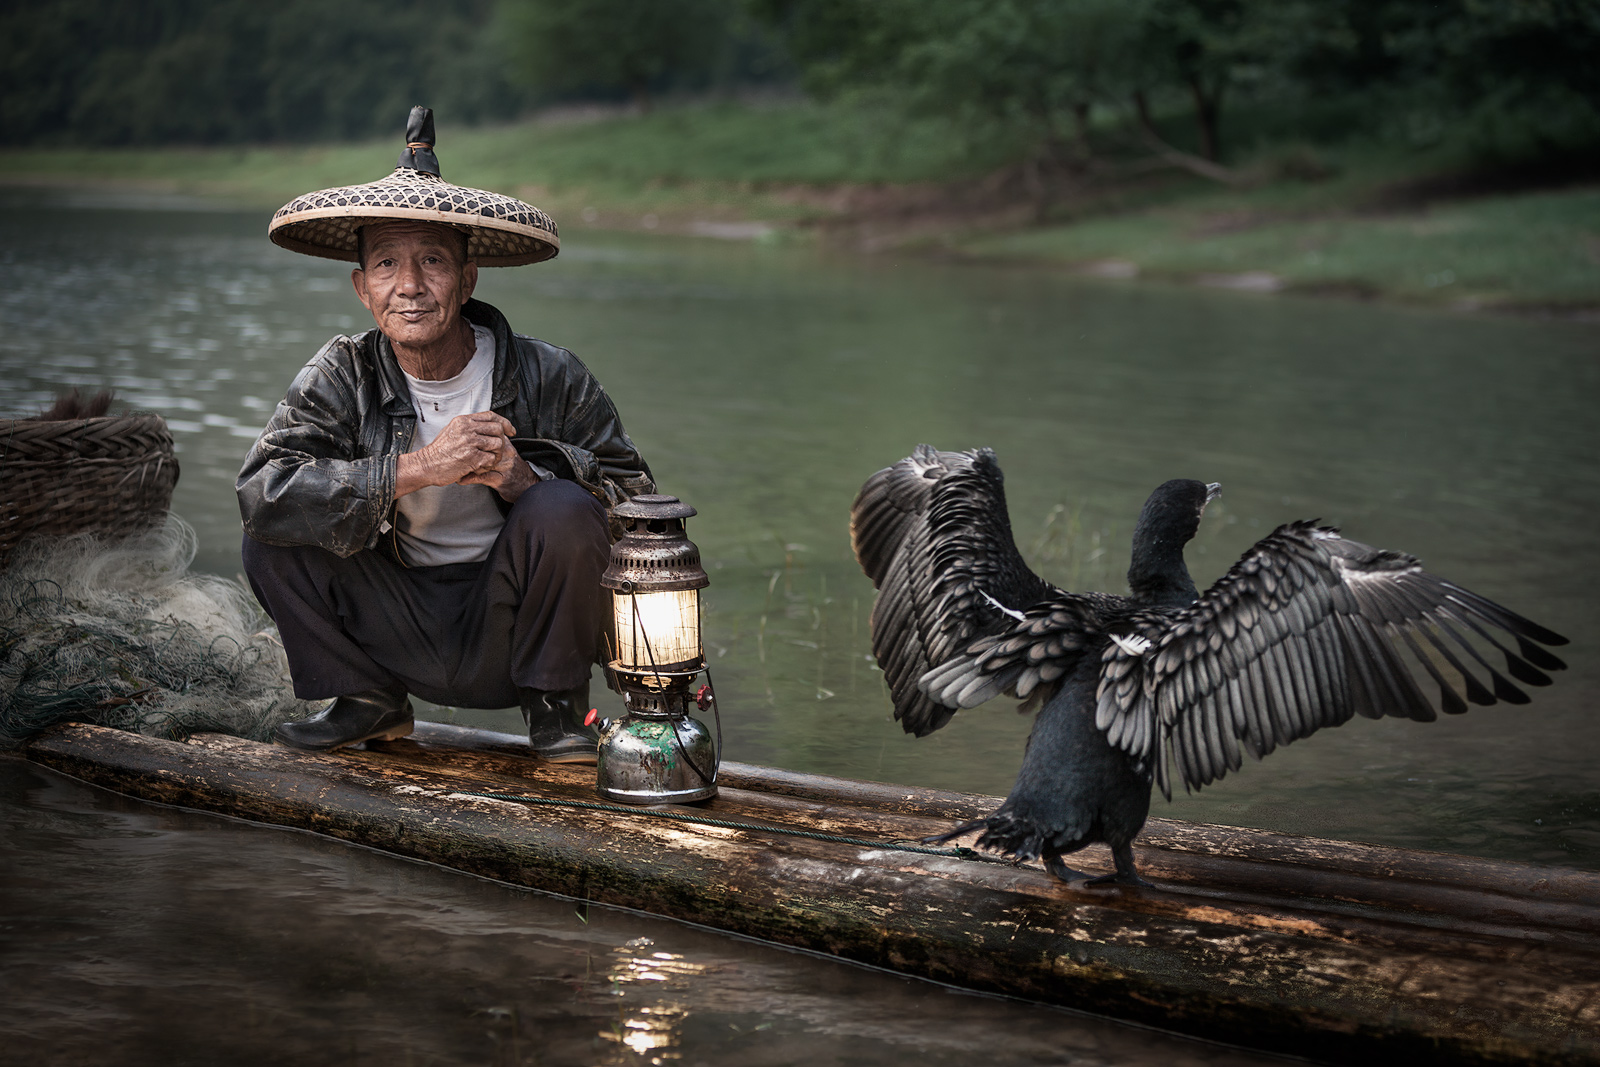 asia,boat,china,chinese,cormorant,fish,fisherman,fishing,guilin,hat,horizontal,household,lamp,lantern,li r, photo